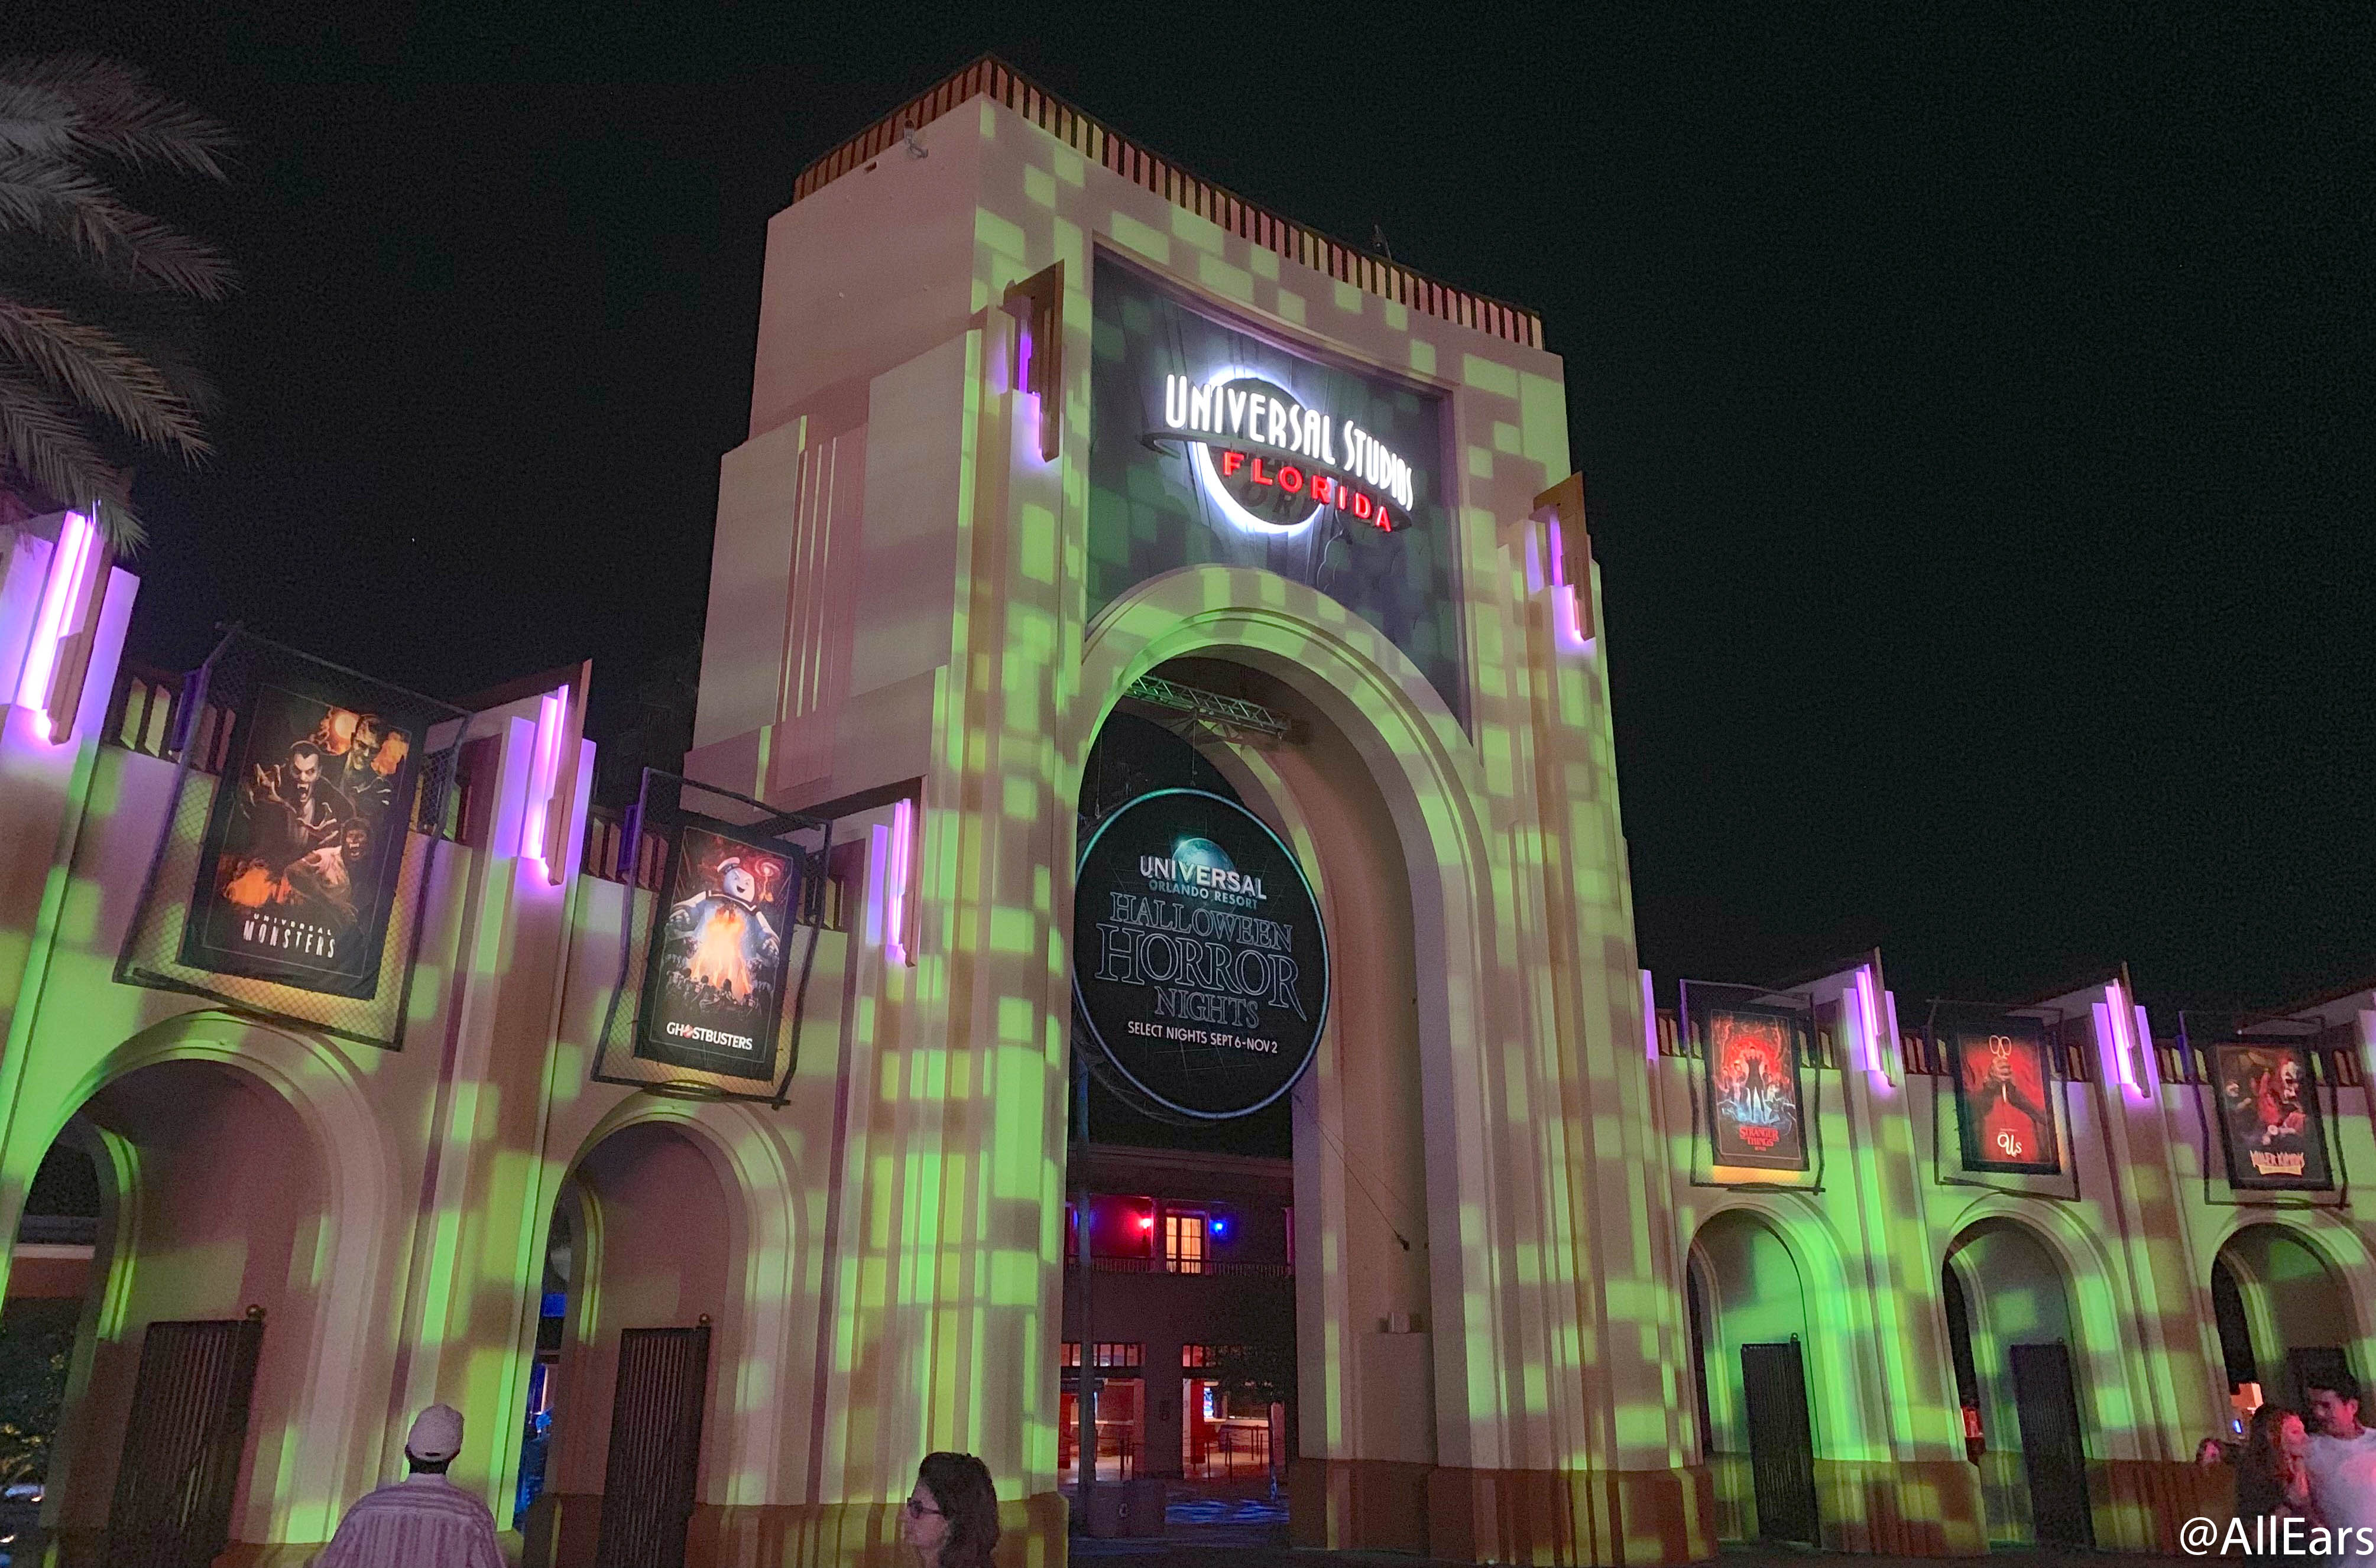 Halloween Moved To Saturday 2020 Halloween Horror Nights 30 Has Moved to Next Year! Here's How We